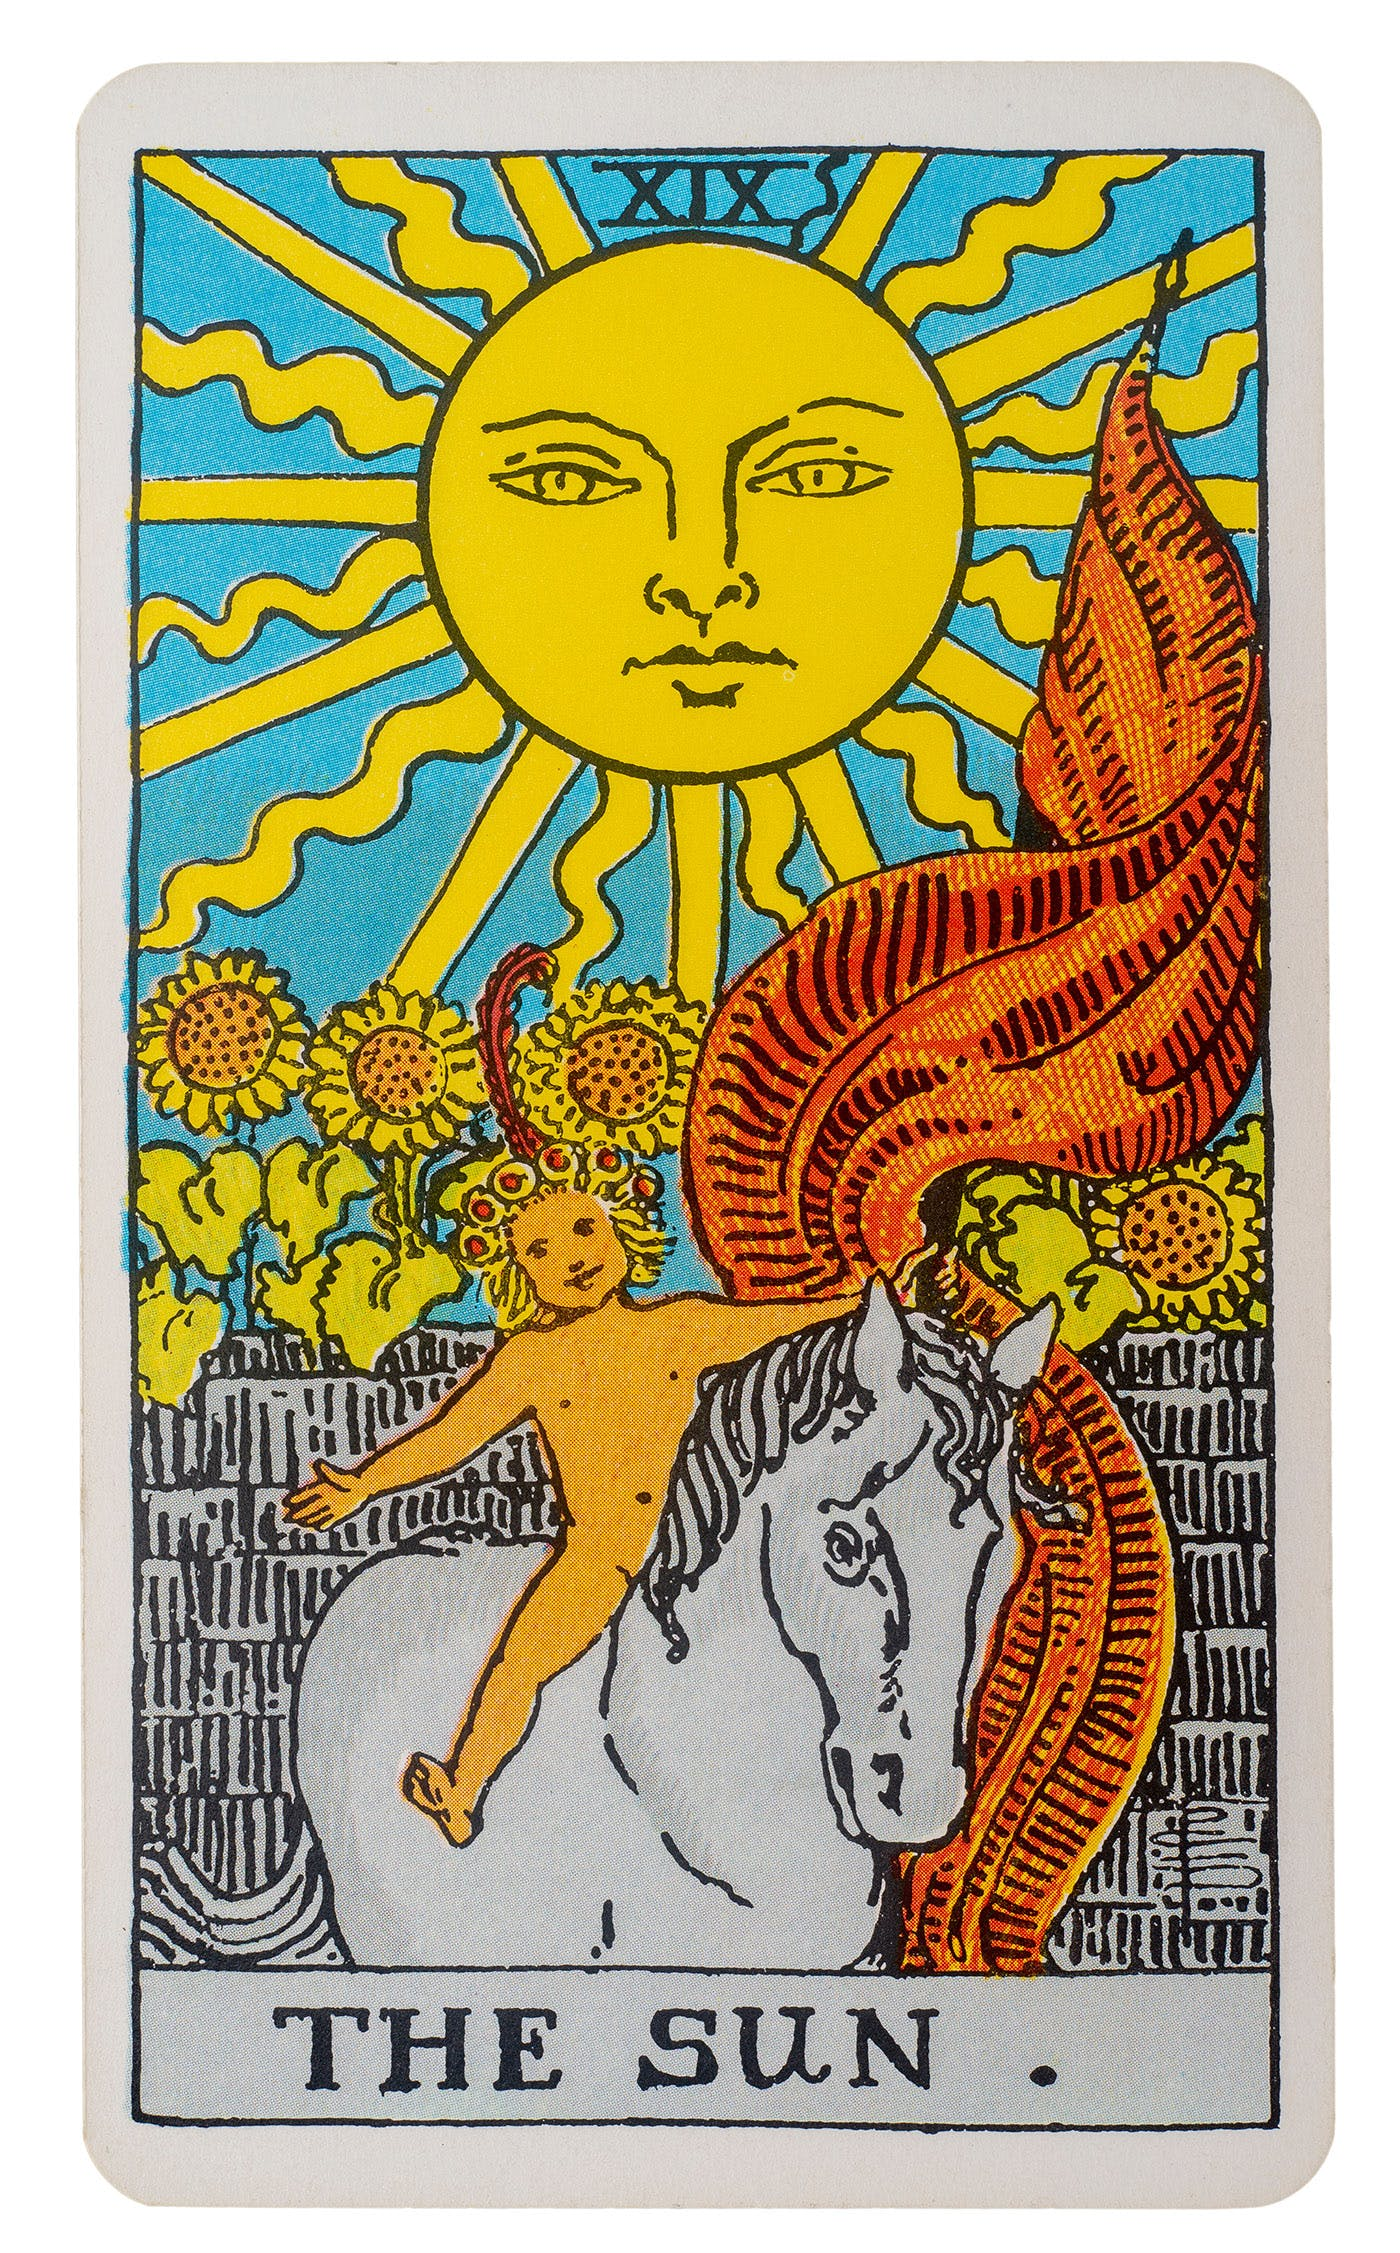 the sun card from the rider-waite deck. Image of a baby rising a horse with the sun and sunflowers in the background.